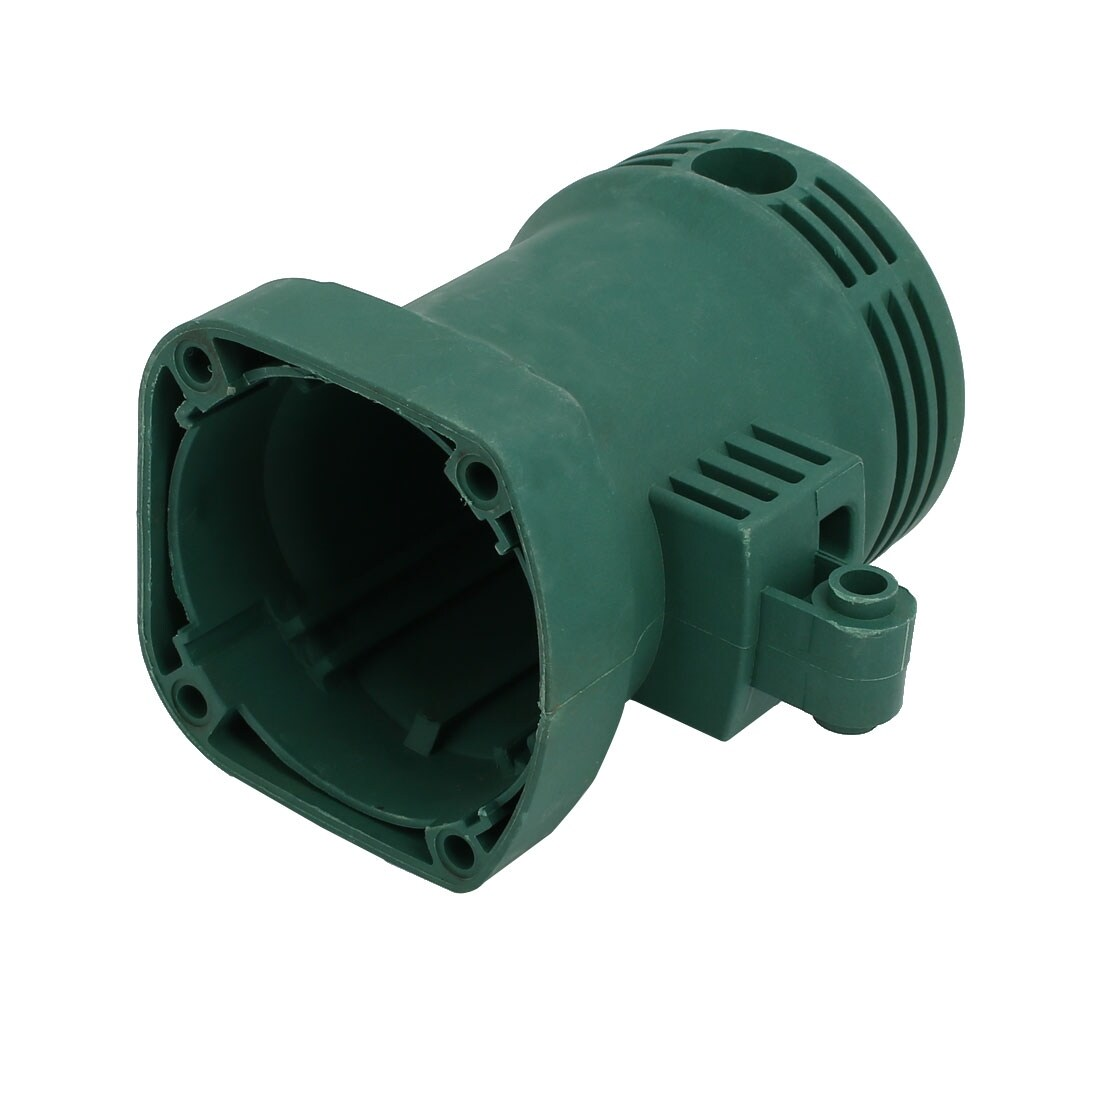 Power Tool Fitting Electric Pick Shell Casing Green for Makita 0810